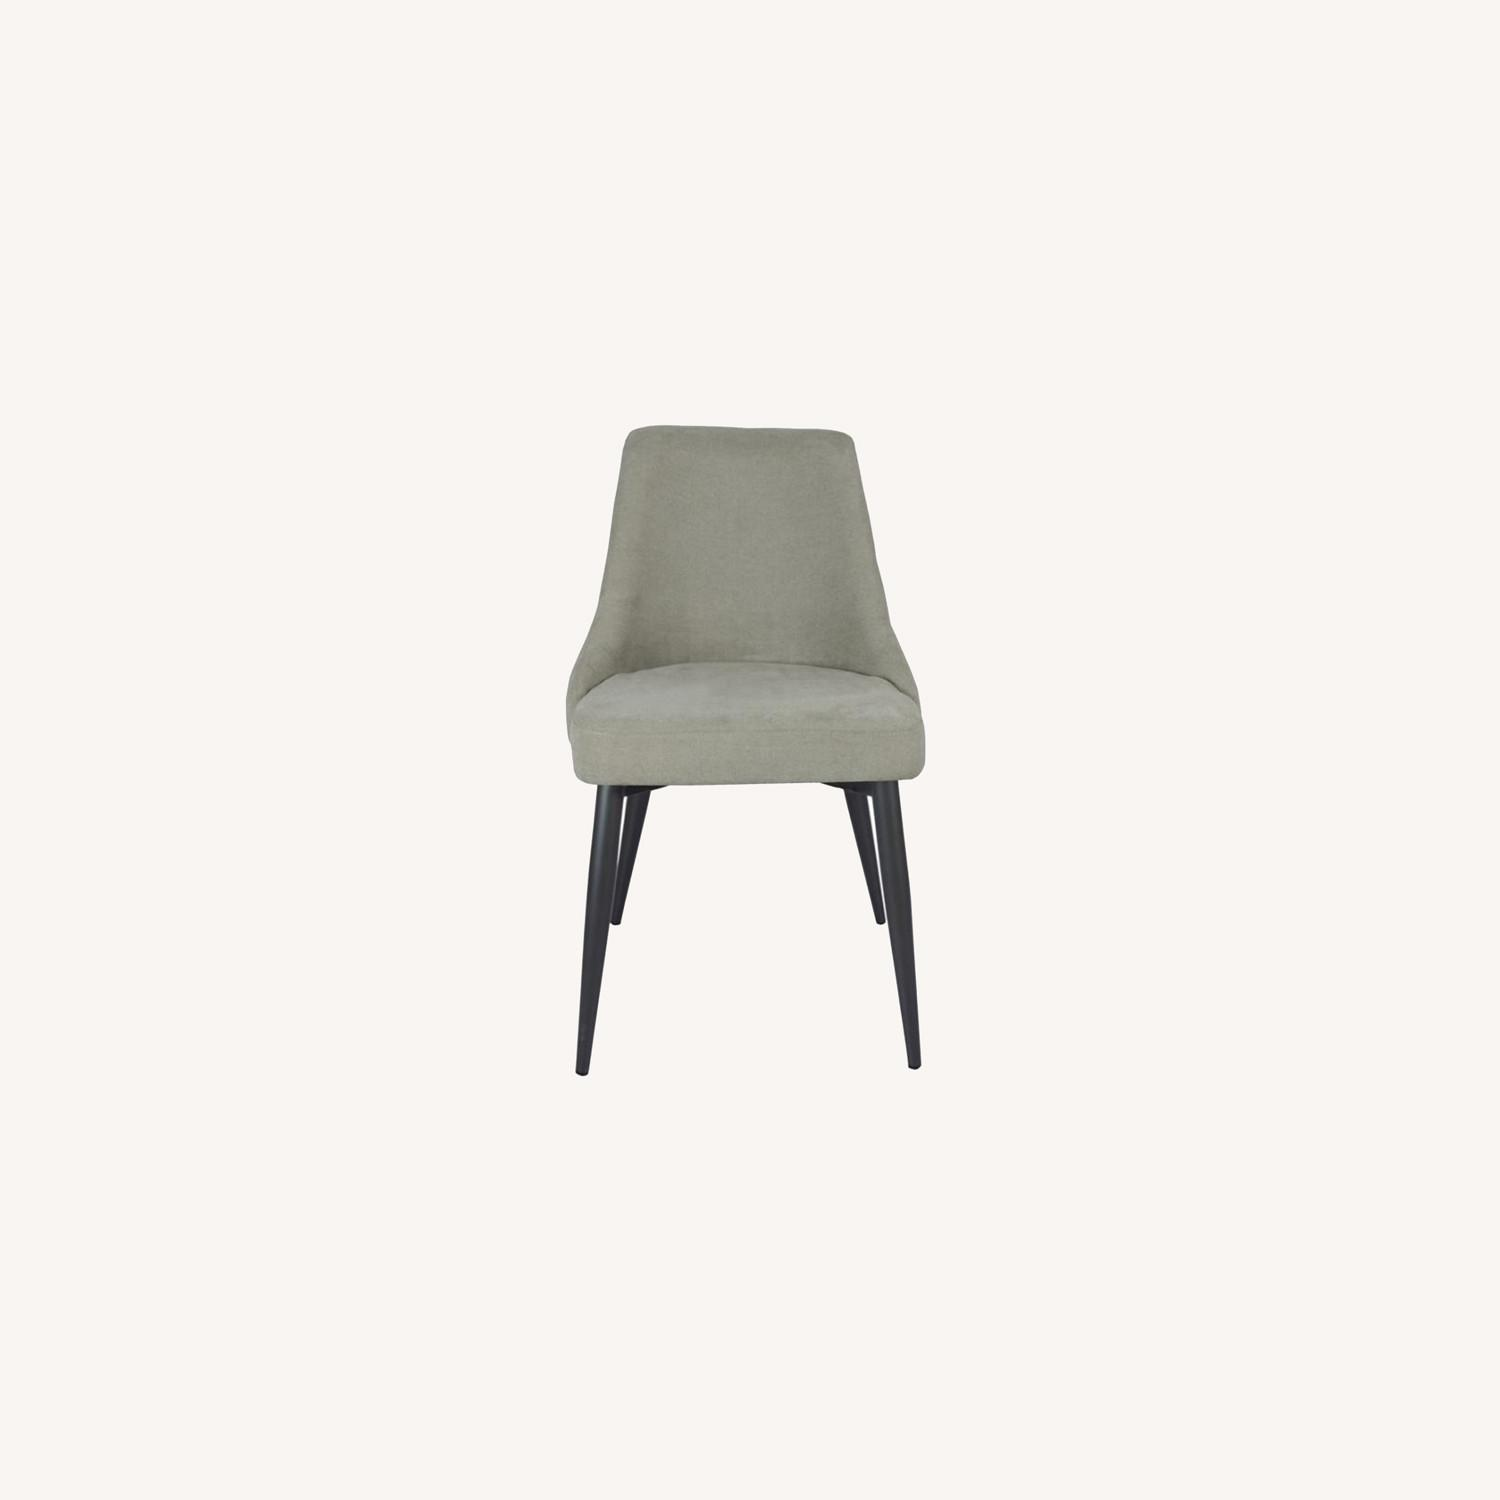 Dining Chair In Off White Microfiber W/Curved Back - image-7